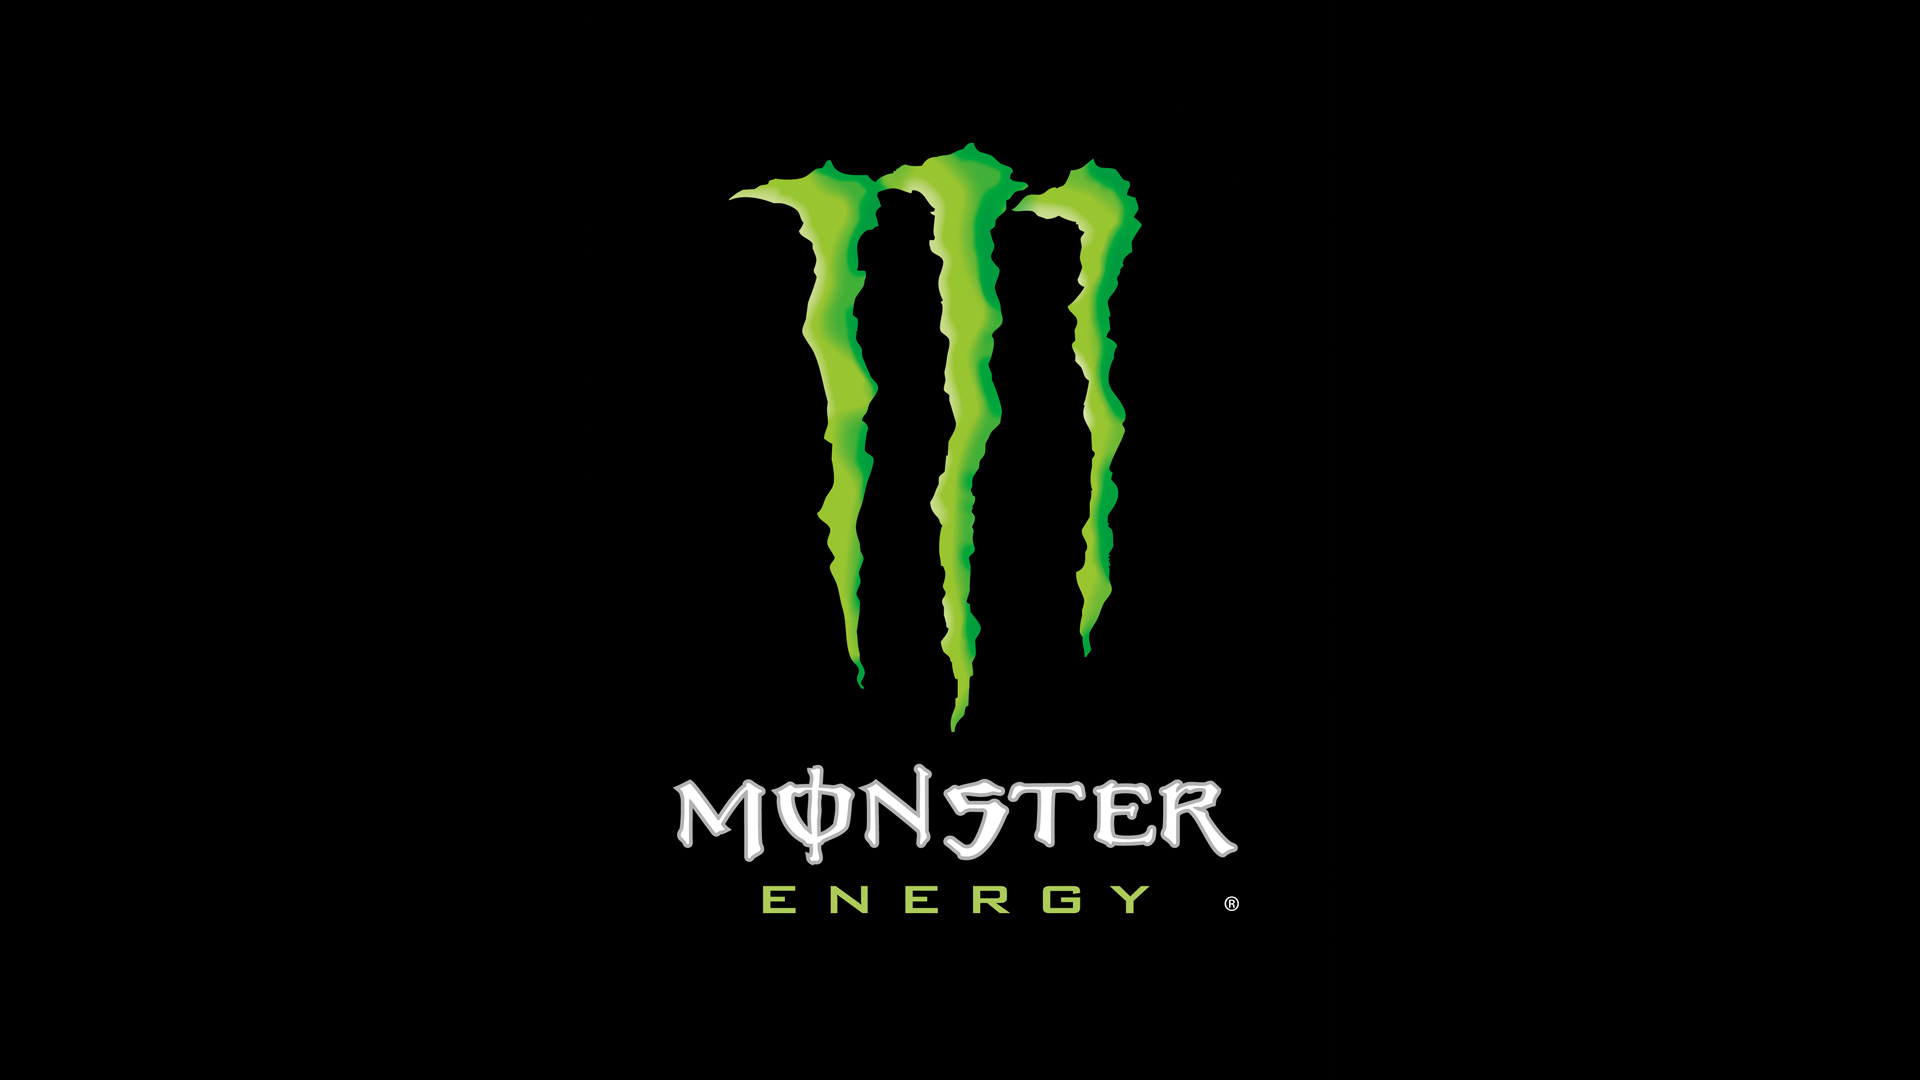 Monster Energy Drink Logo wallpaper   760807 1920x1080